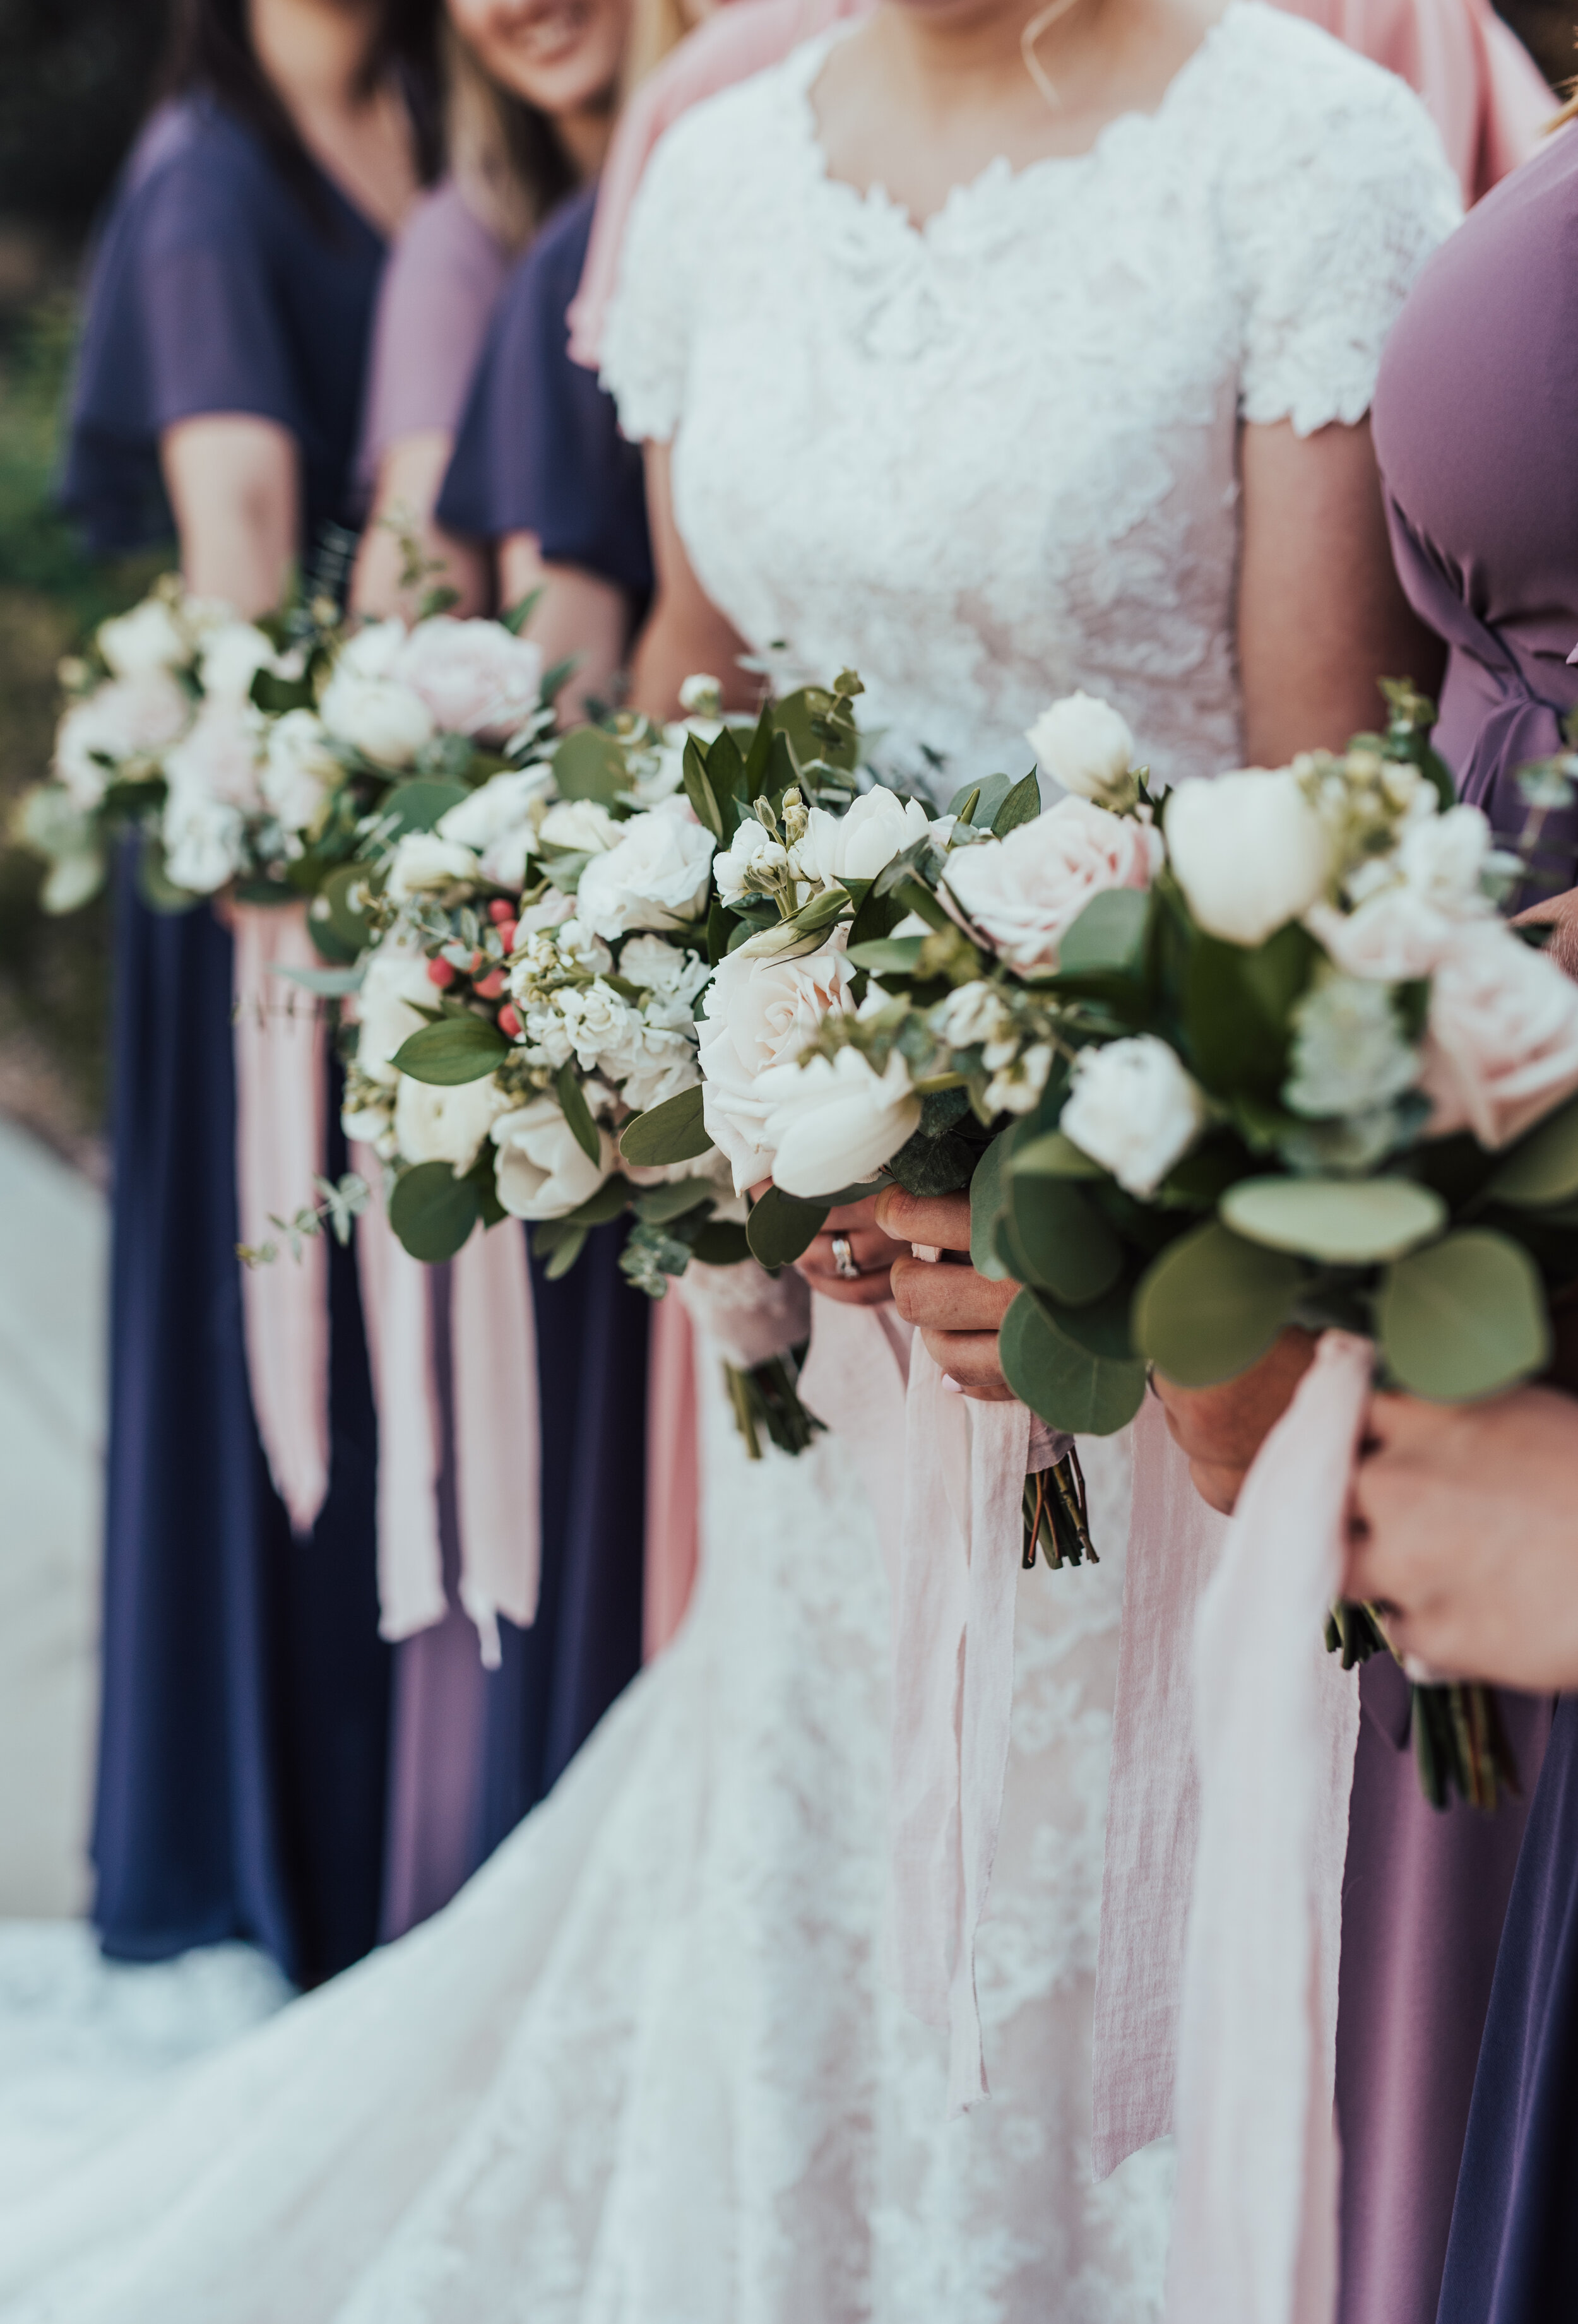 Payson Utah Temple payson utah wedding utah photographer wedding pictures bridesmaids and bride pictures outside the temple sealed for eternity wedding bouquet bridesmaid bouquets white and pink wedding flowers purple bridesmaid dresses bridesmaid outfit inspo wedding bouquet with ribbons lace wedding dress modest wedding gown #utahweddingphotographer #utahvalleyphotographer #weddingday #weddingdress #bride #bridetribe #bestfriends #weddingbouquet #bridesmaidpictures #love #sisterhood